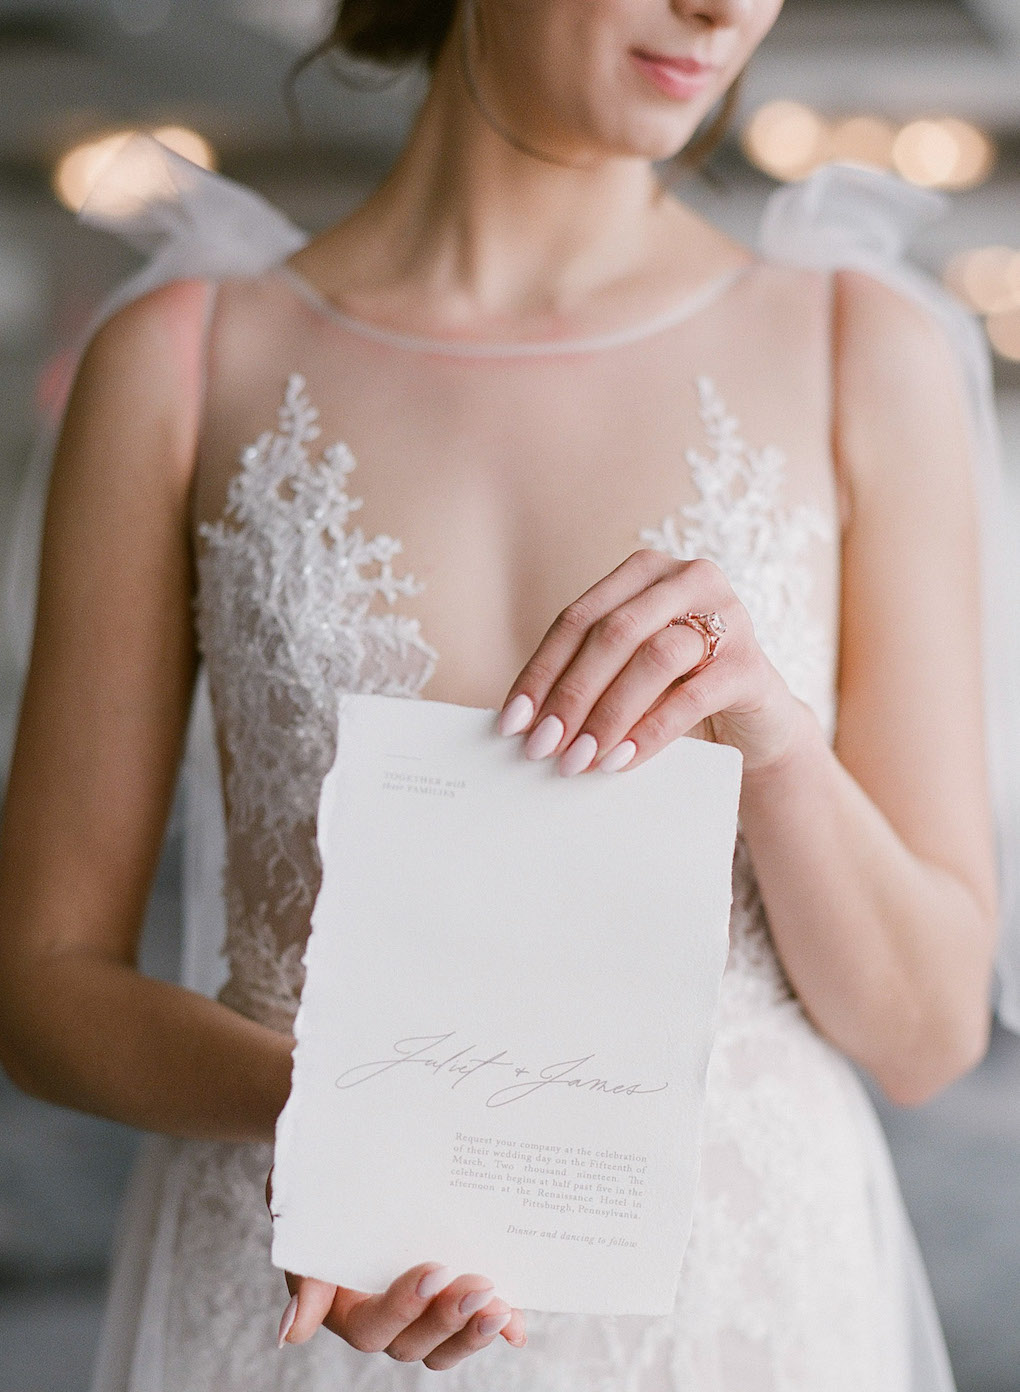 Photo ideas for wedding invites: Soft and Subtle Palettes of Spring Blossoms | Editorial Shoot at The Renaissance Pittsburgh by Exhale Events. See more inspiration at exhale-events.com!